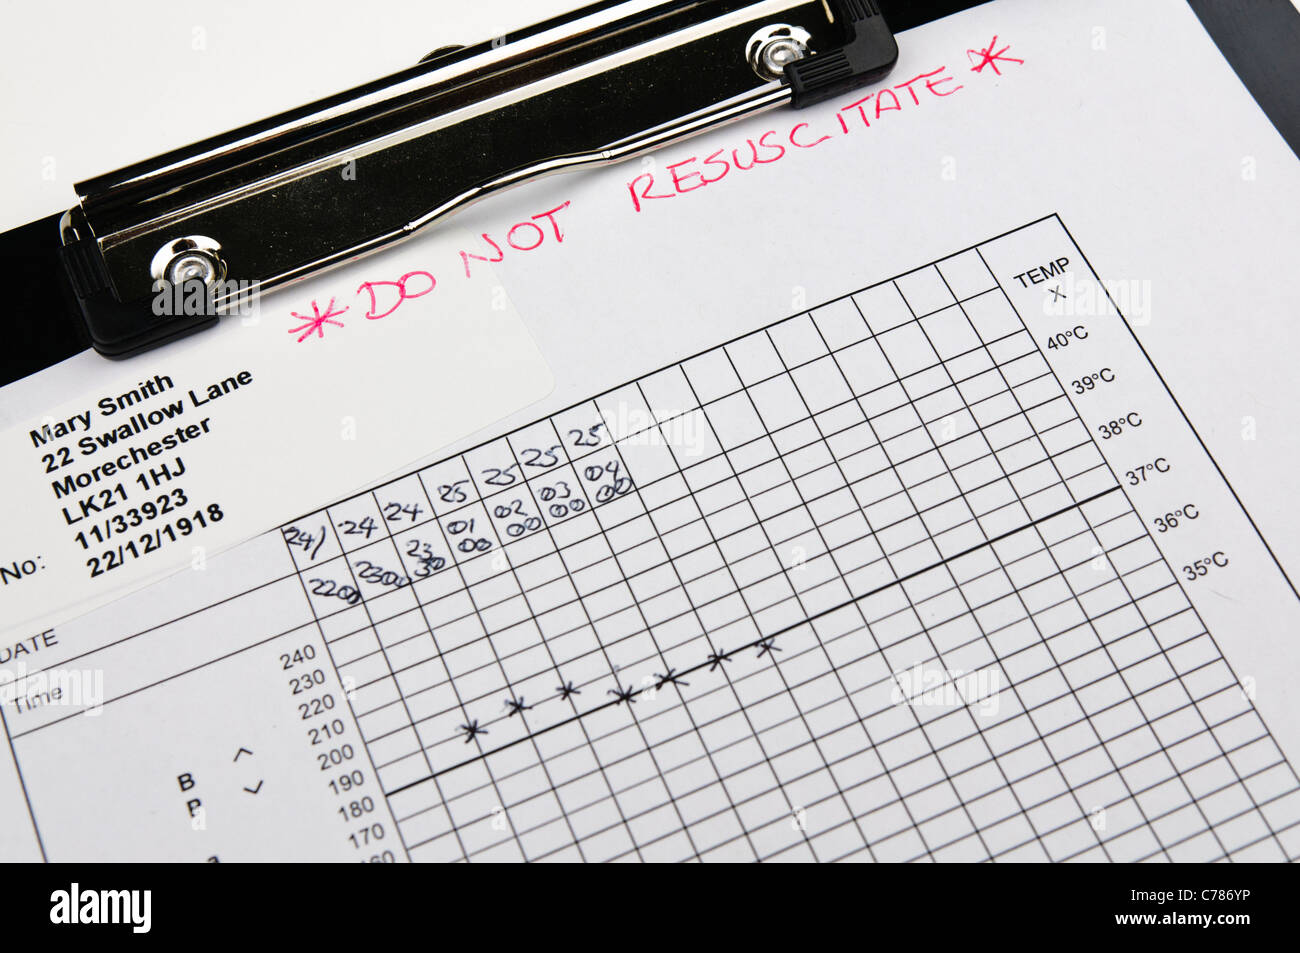 Patient's observation chart marked 'Do Not Resuscitate' - Stock Image